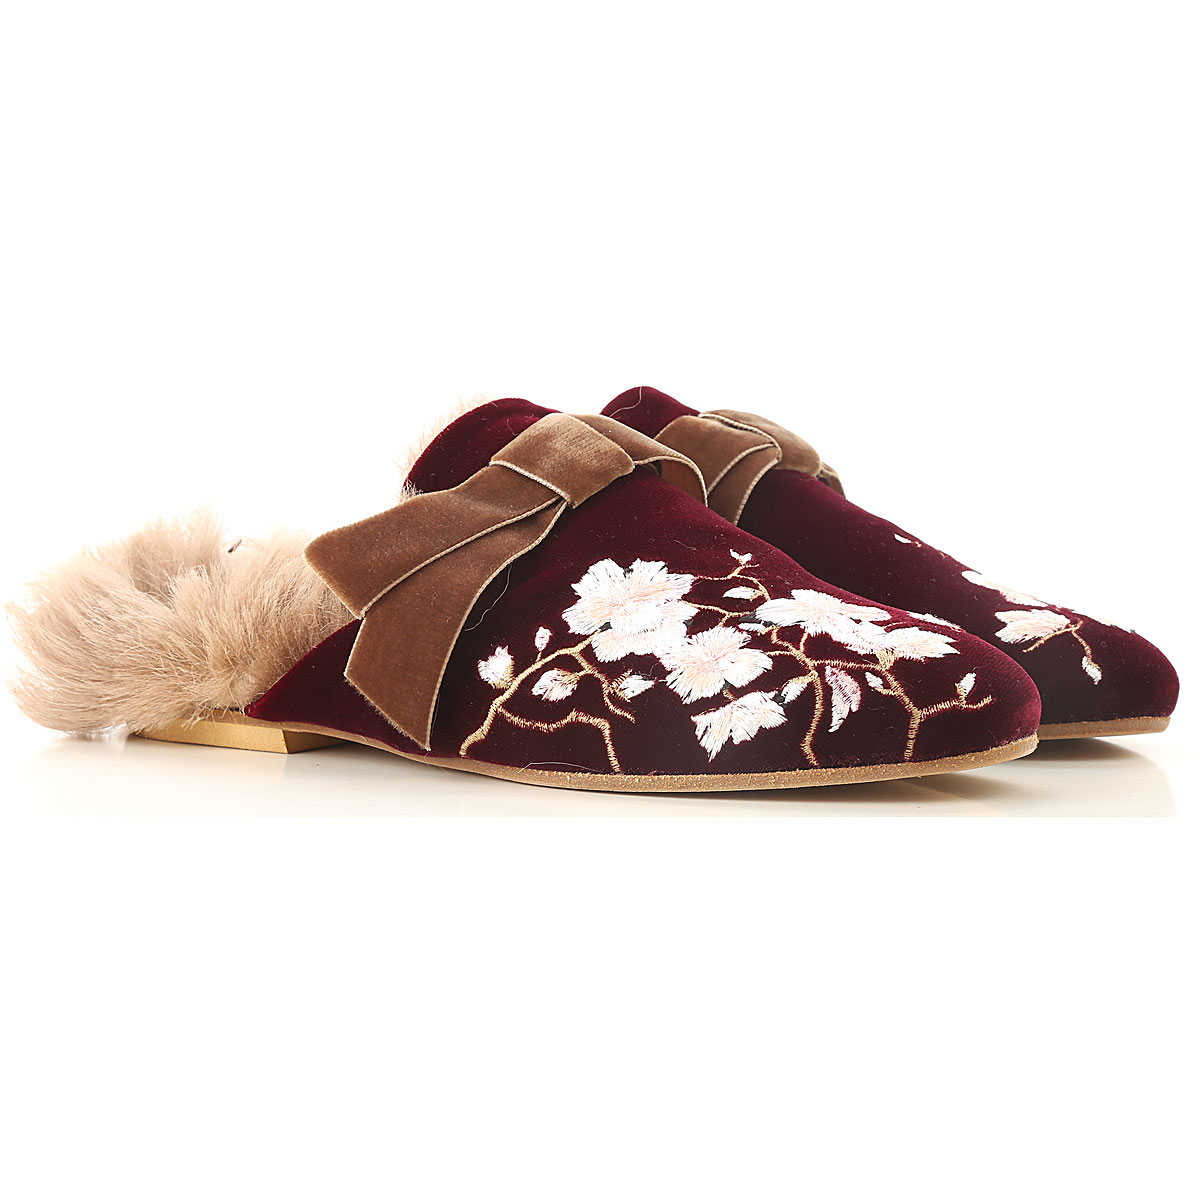 Gia Couture Ballet Flats Ballerina Shoes for Women On Sale in Outlet Burgundy SE - GOOFASH